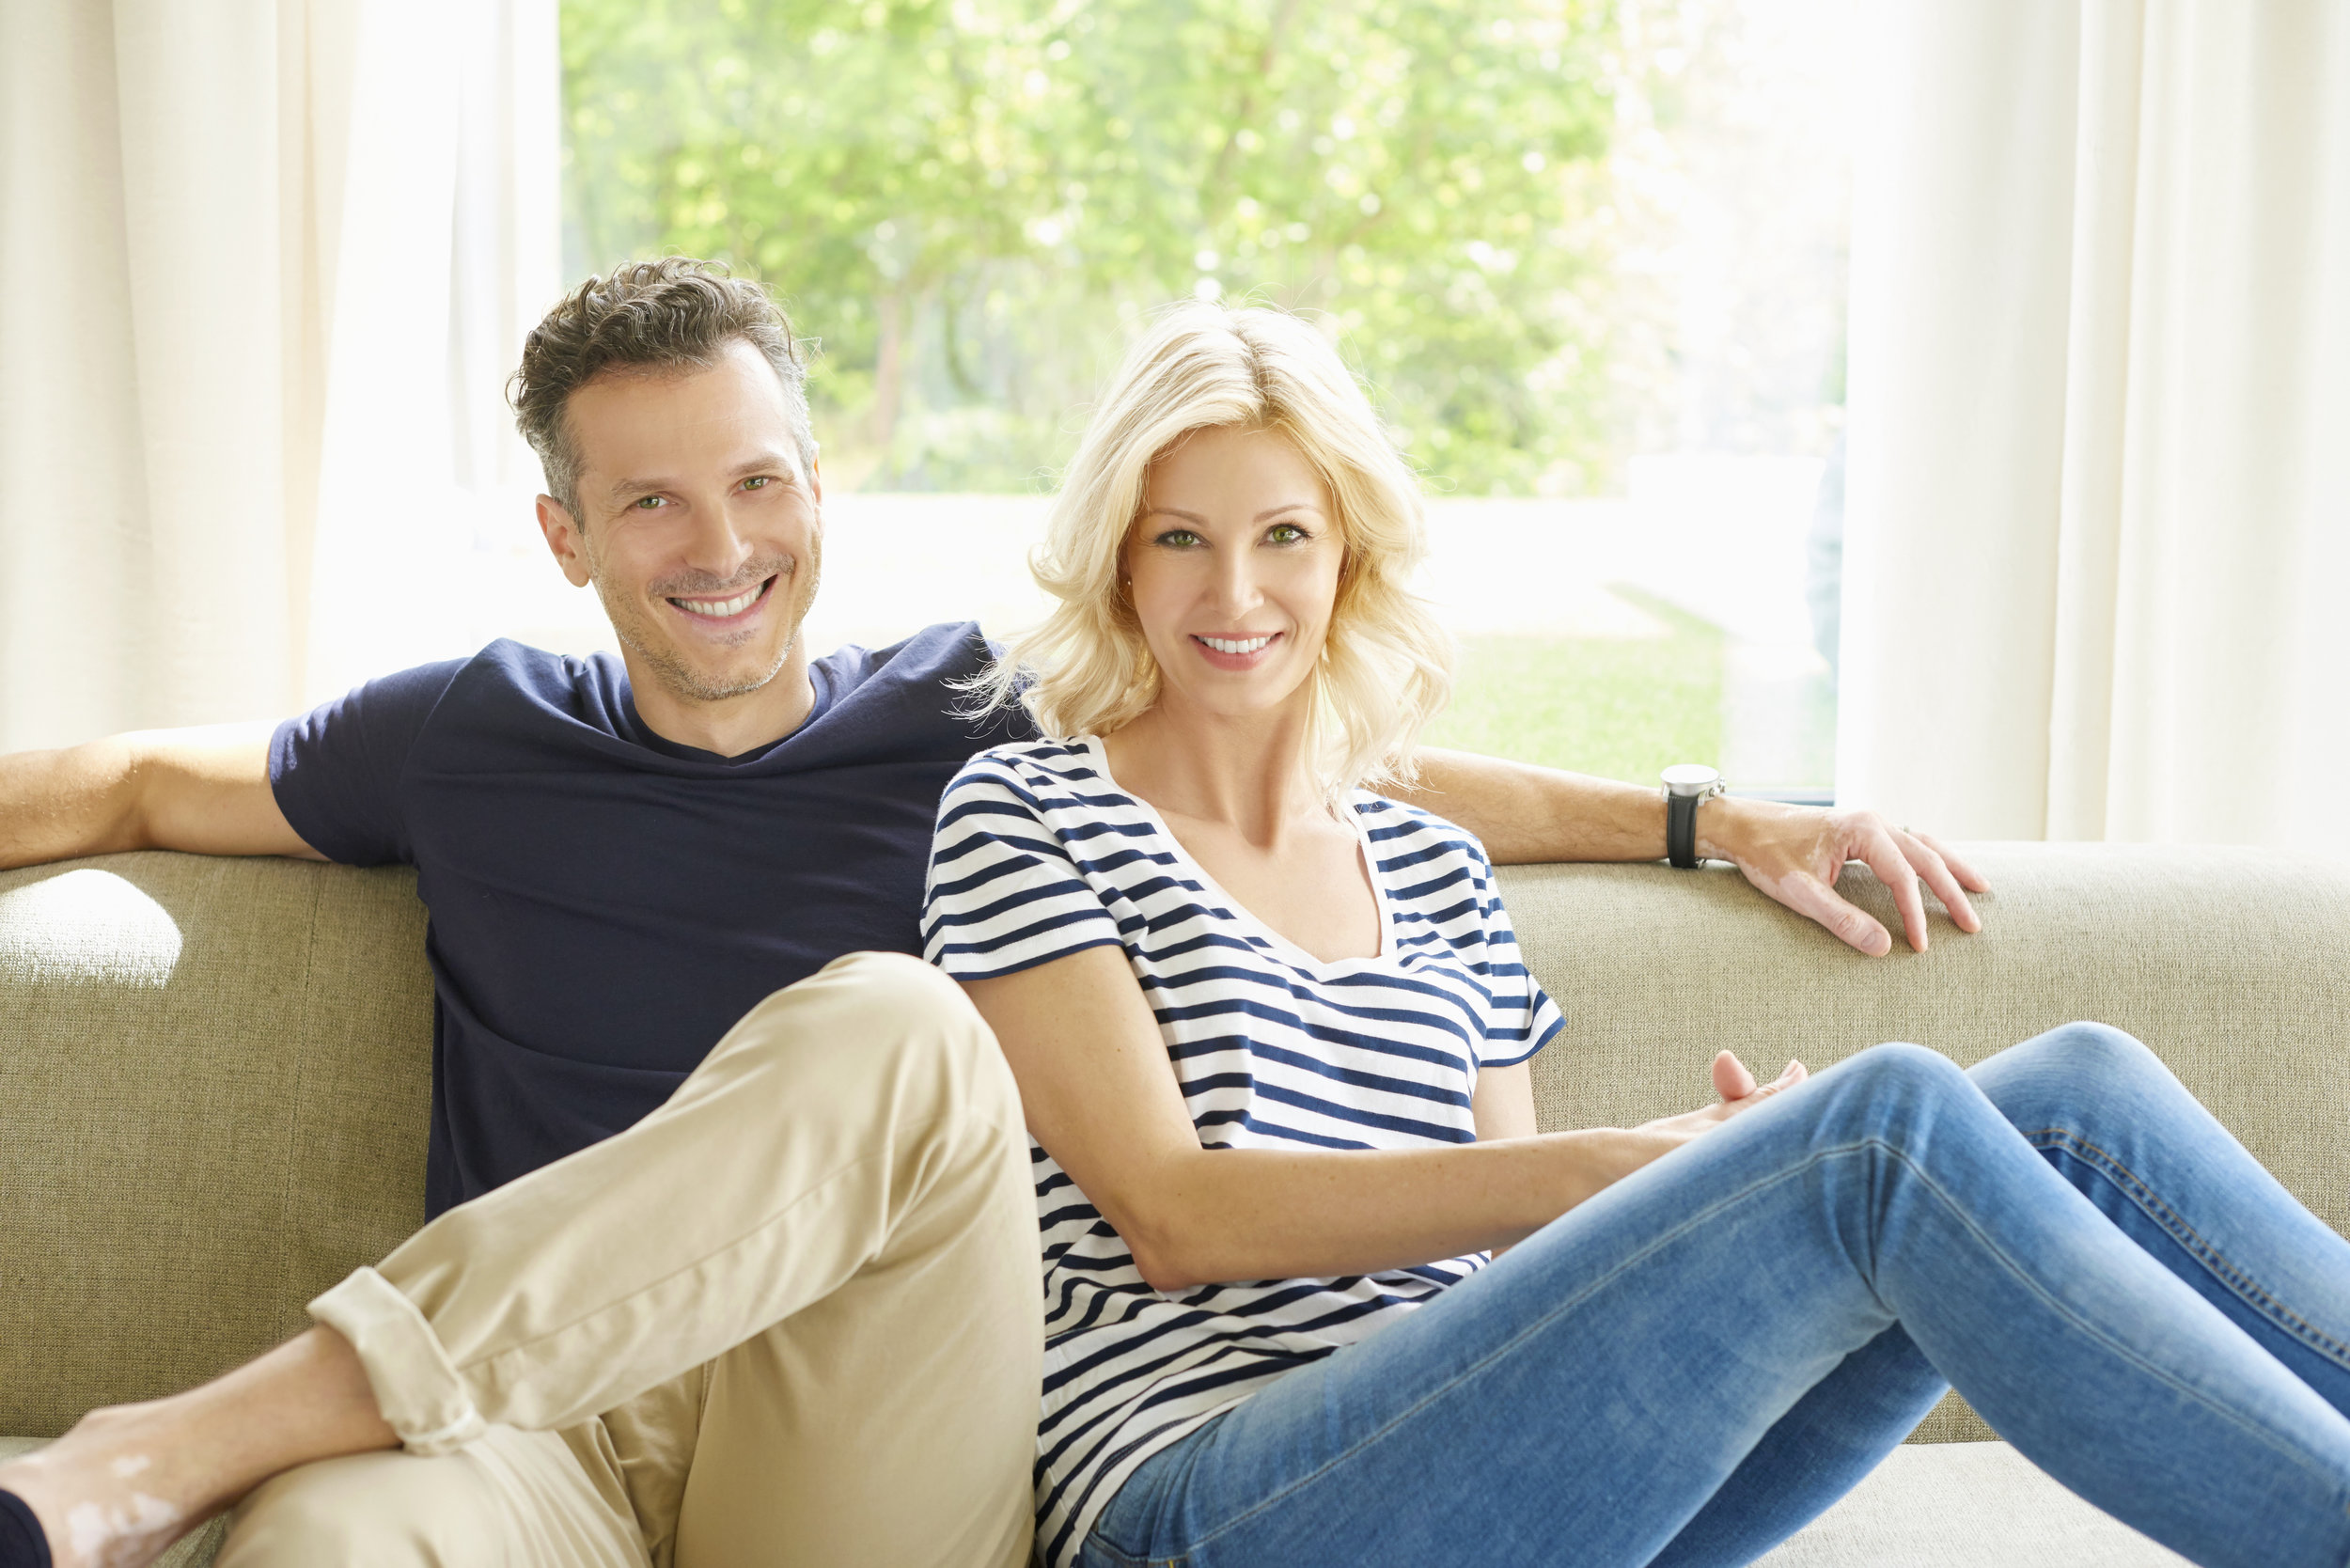 sally vail istock image couple smiling on sofa.jpg